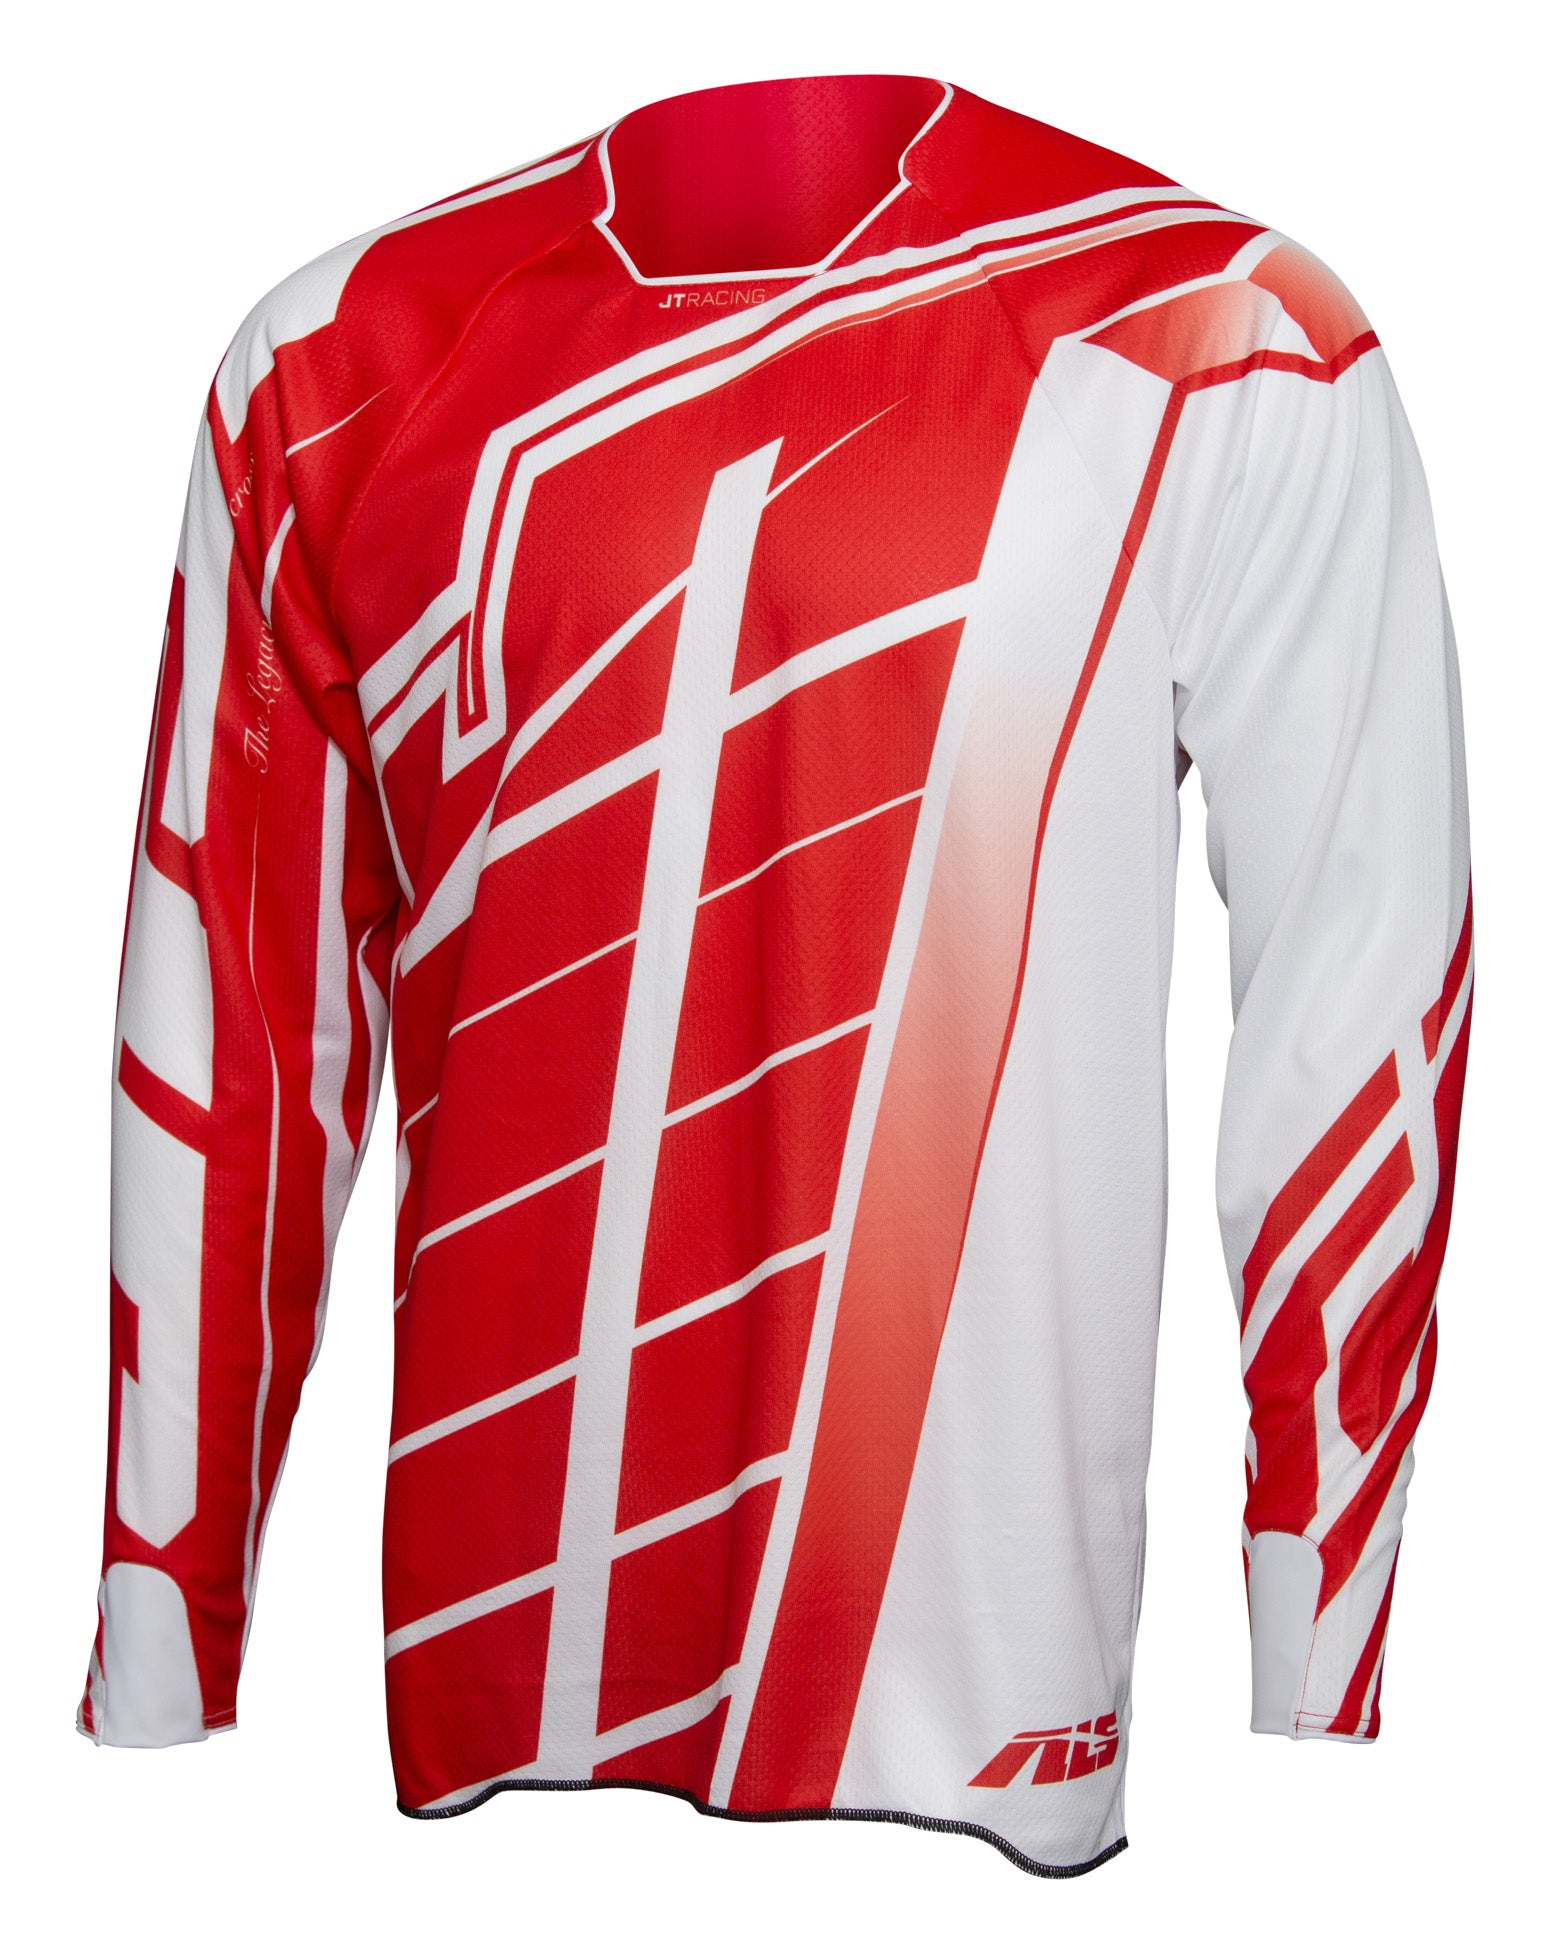 JT Racing-USA Hyperlite Breaker Jersey, Red/White